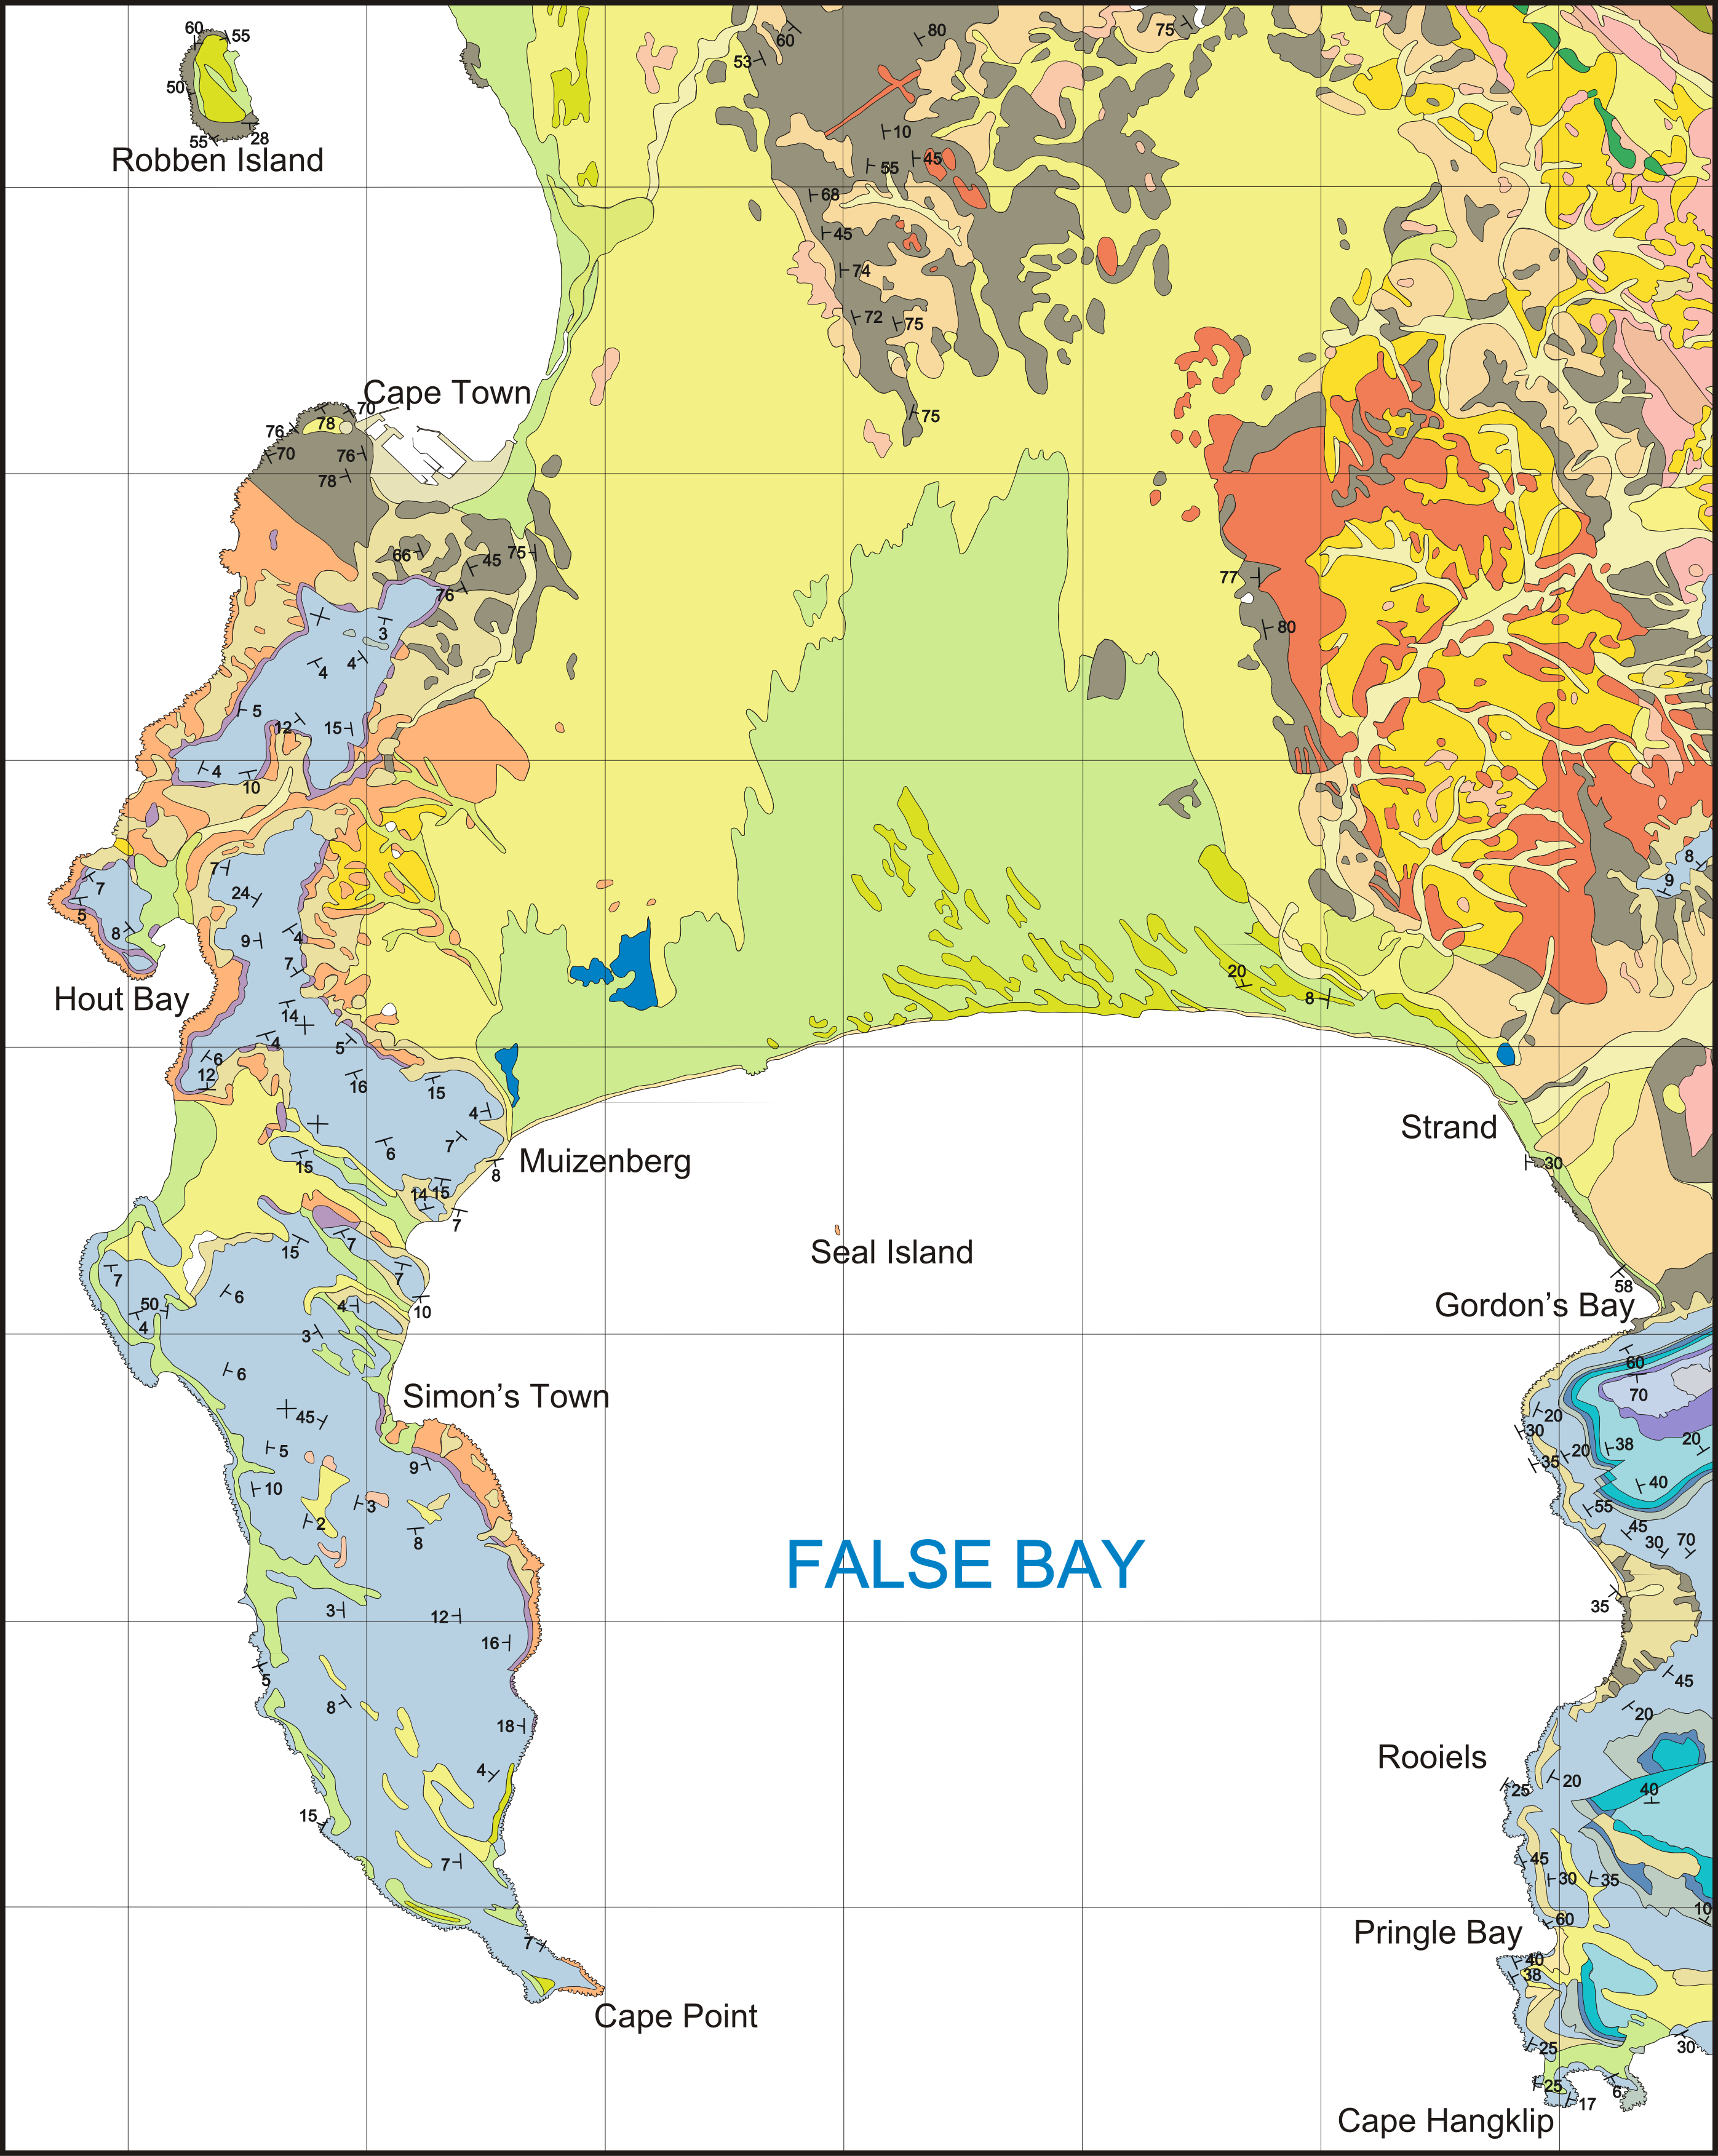 FileGeological map of the Cape Peninsula and False Baypng